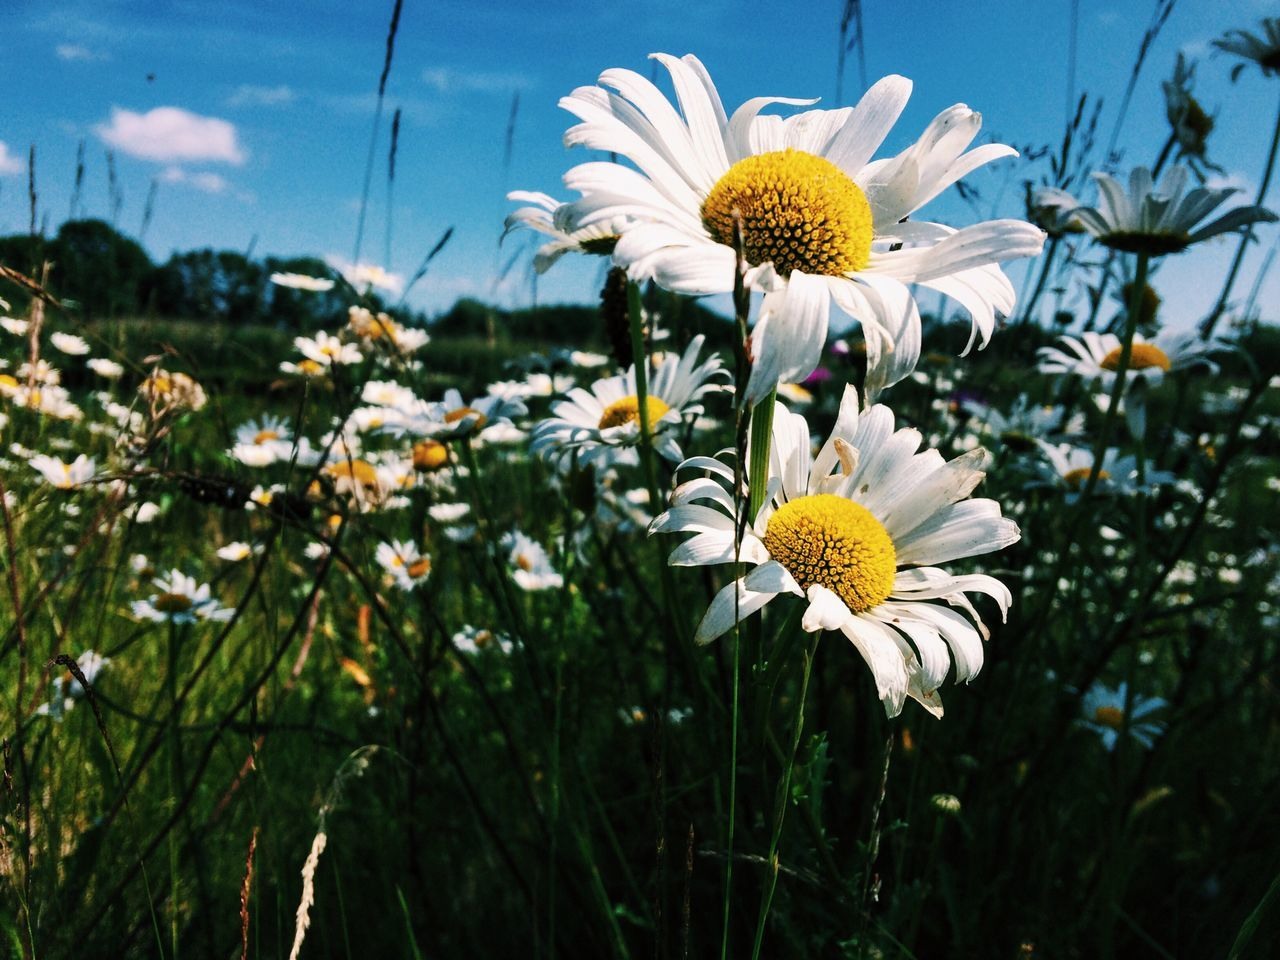 Daisy Daisies Daisy Flower Hello Summer!  Summertime Summer Vibe Flowers Flower Collection Close-up Flowers,Plants & Garden Flowers, Nature And Beauty Nature_collection Nature Photography Nature On Your Doorstep Naturelovers Beautiful Beauty In Nature EyeEm Nature Lover Eye Em Nature Lover Eye Em Around The World Eye Em Best Shots - Flowers Eye Em Gallery EyeEm Gallery Country Life EyeEm Best Edits